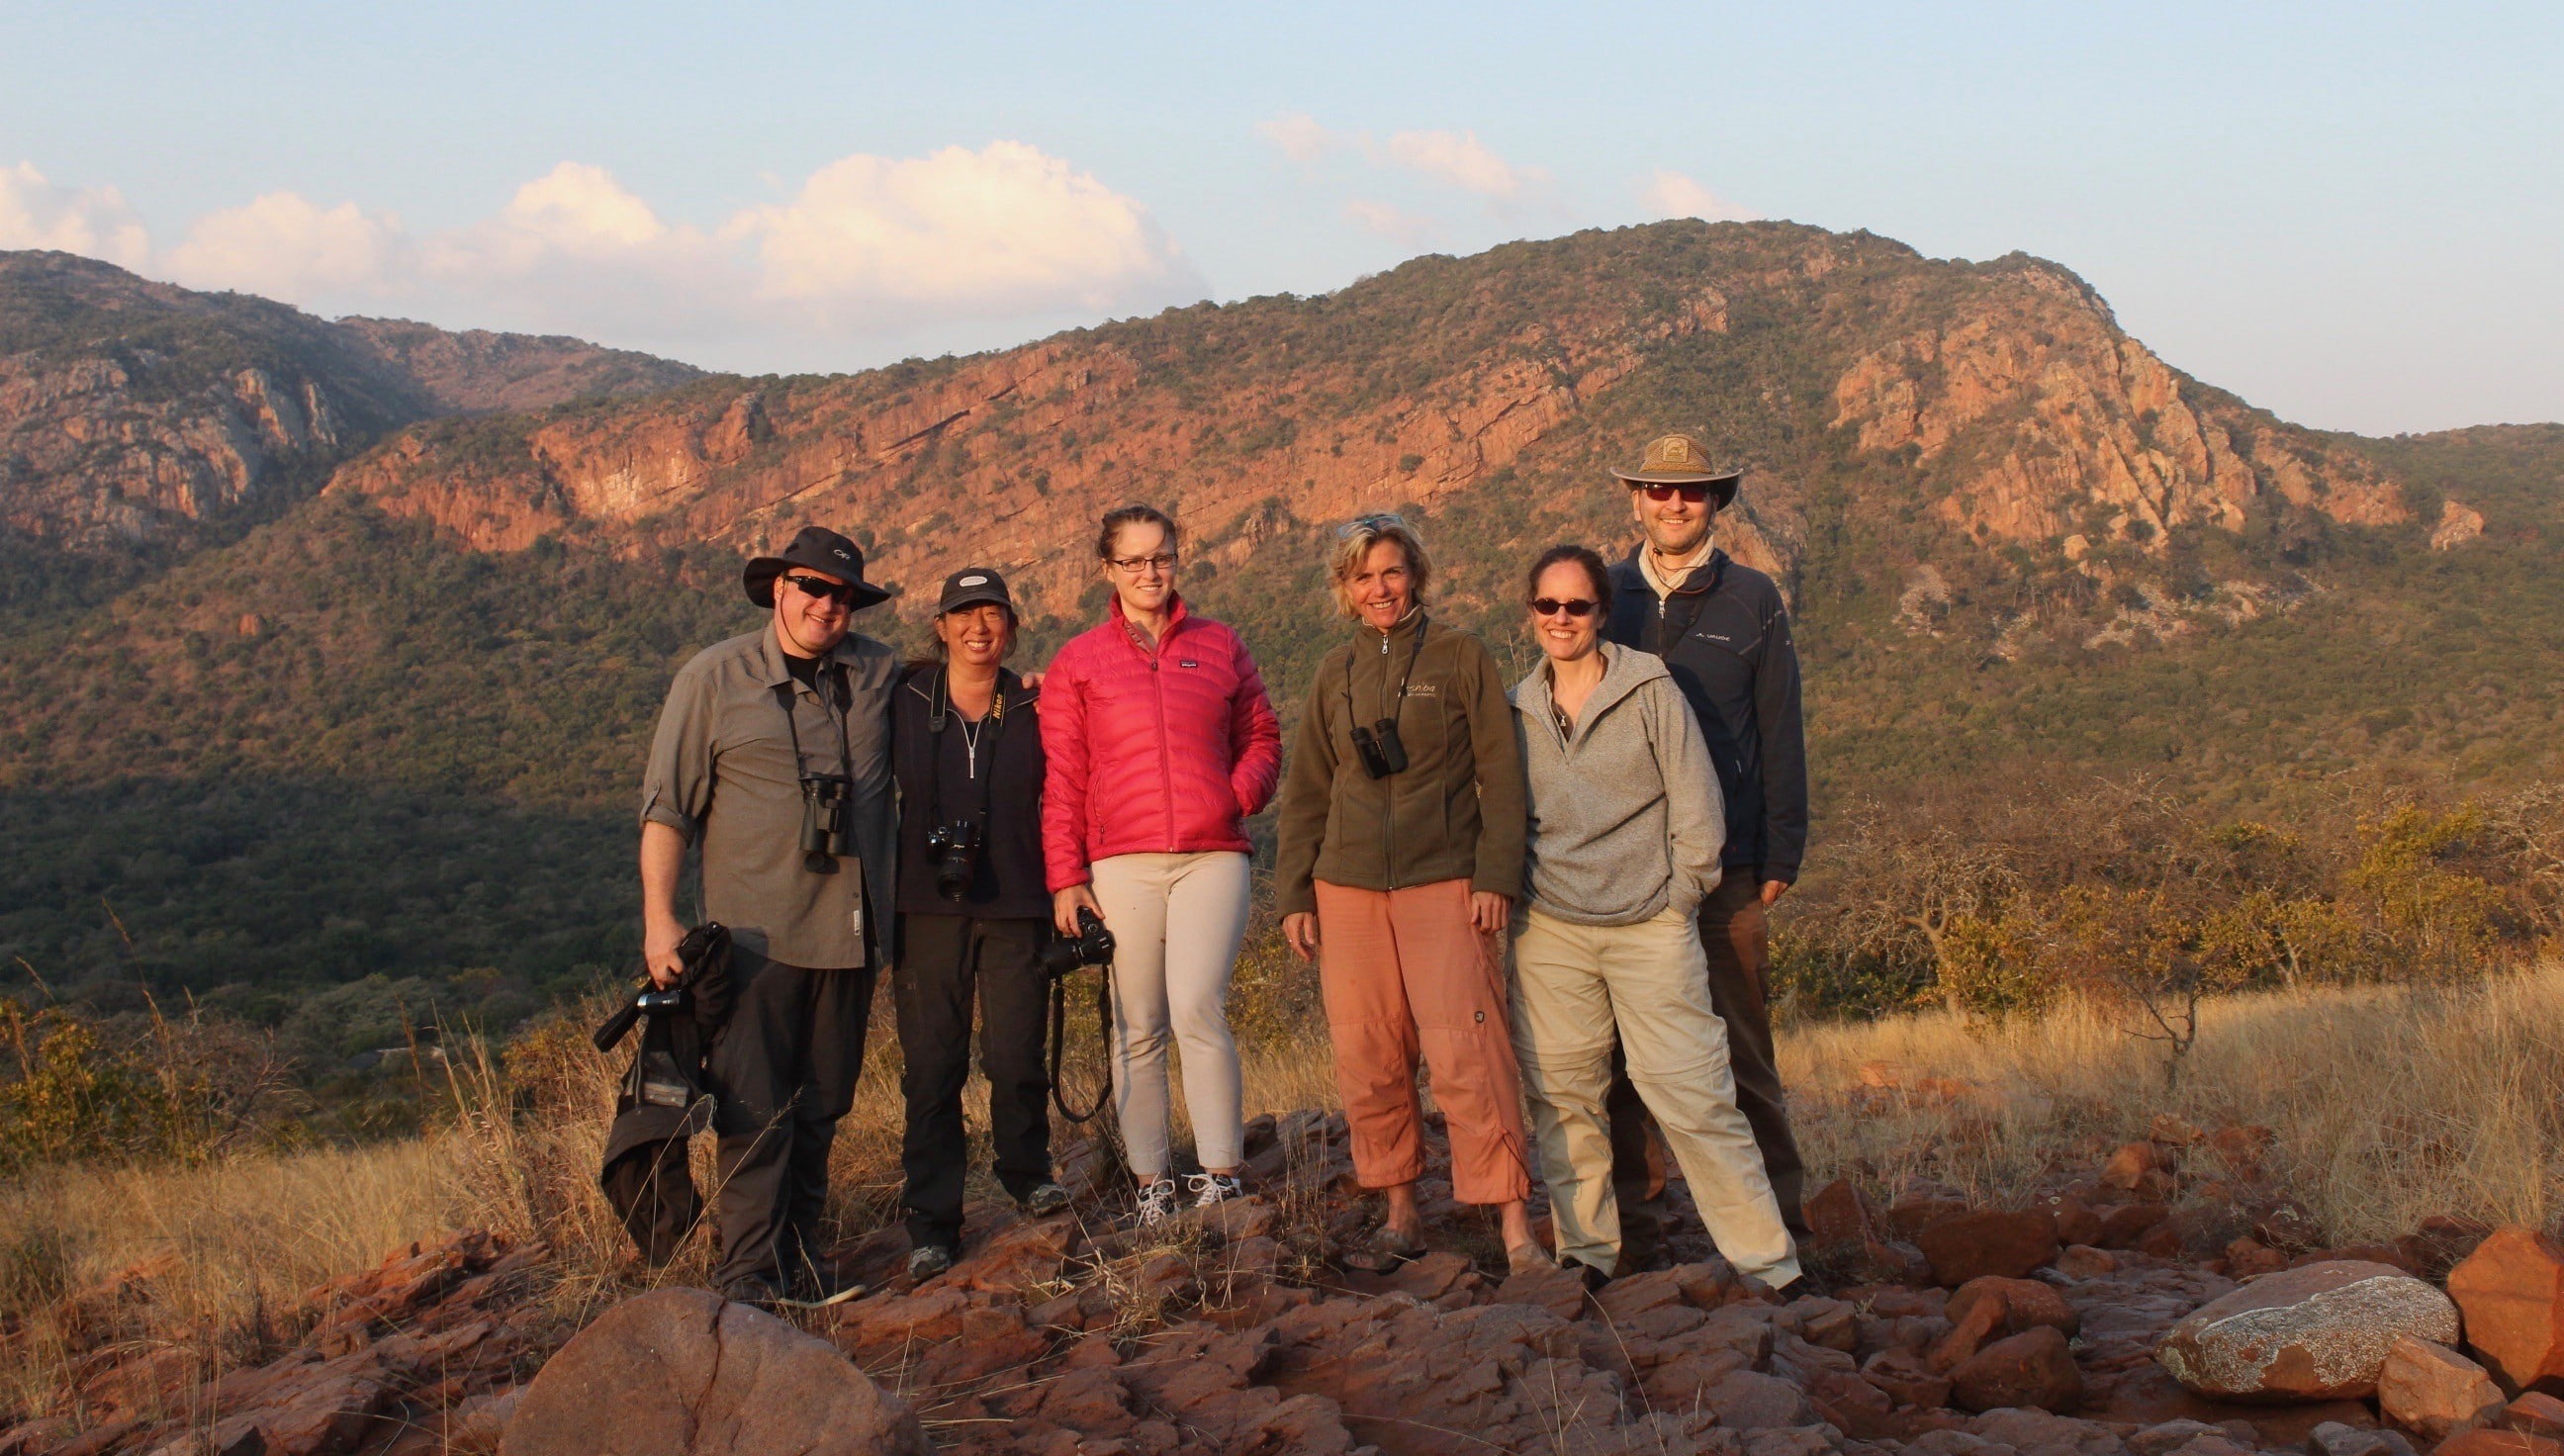 Alexandra's Africa Guests with Alexandra enjoying Sun Down on Soutpansberg Mountains